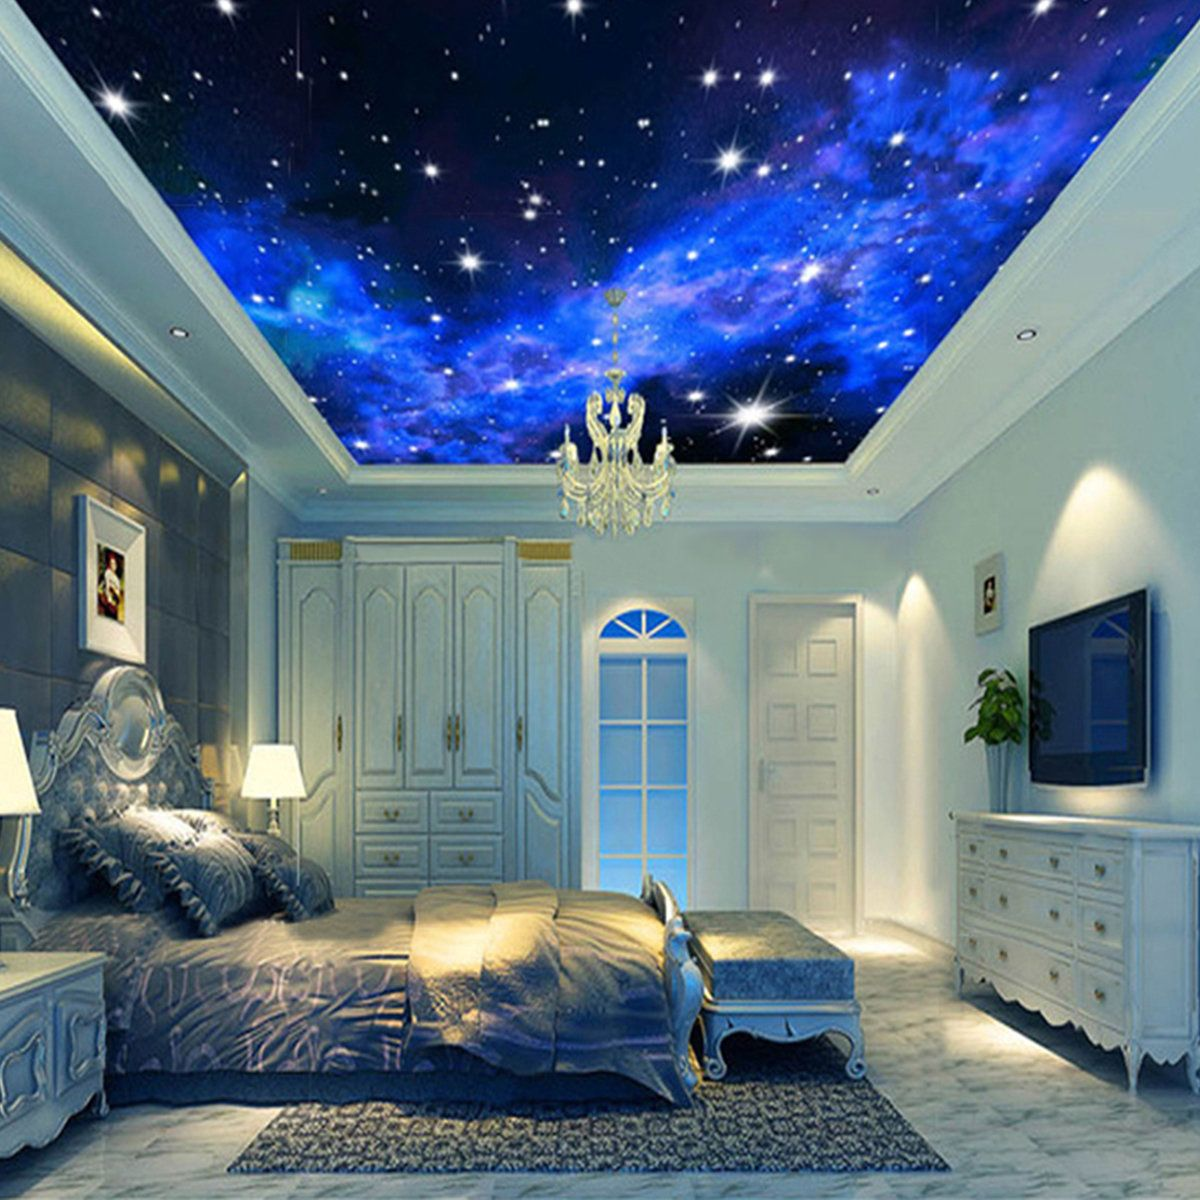 3d wallpaper mural night clouds star sky wall paper for Decorators best wallpaper